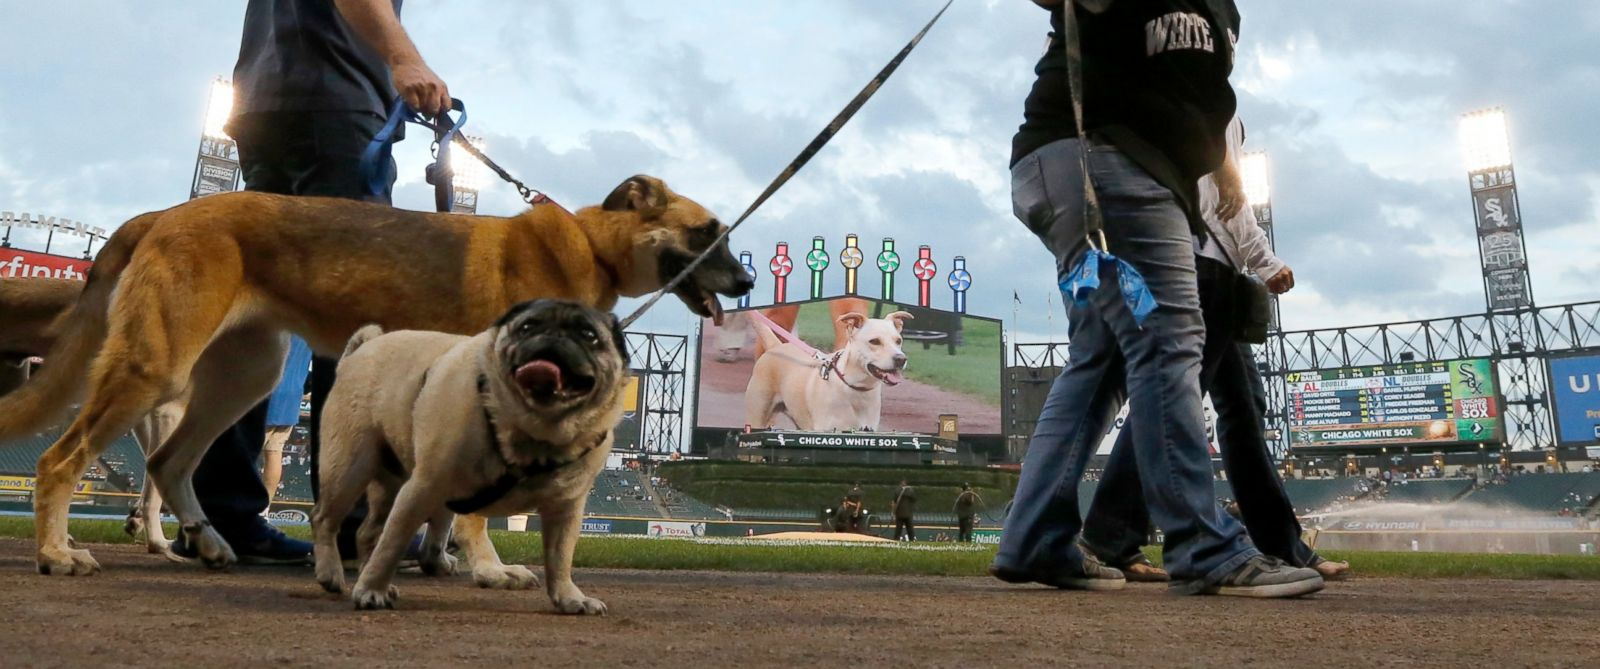 the baseball match between the panthers and white dogs Get the latest carolina panthers news, scores, stats, standings, rumors, and more from espn.